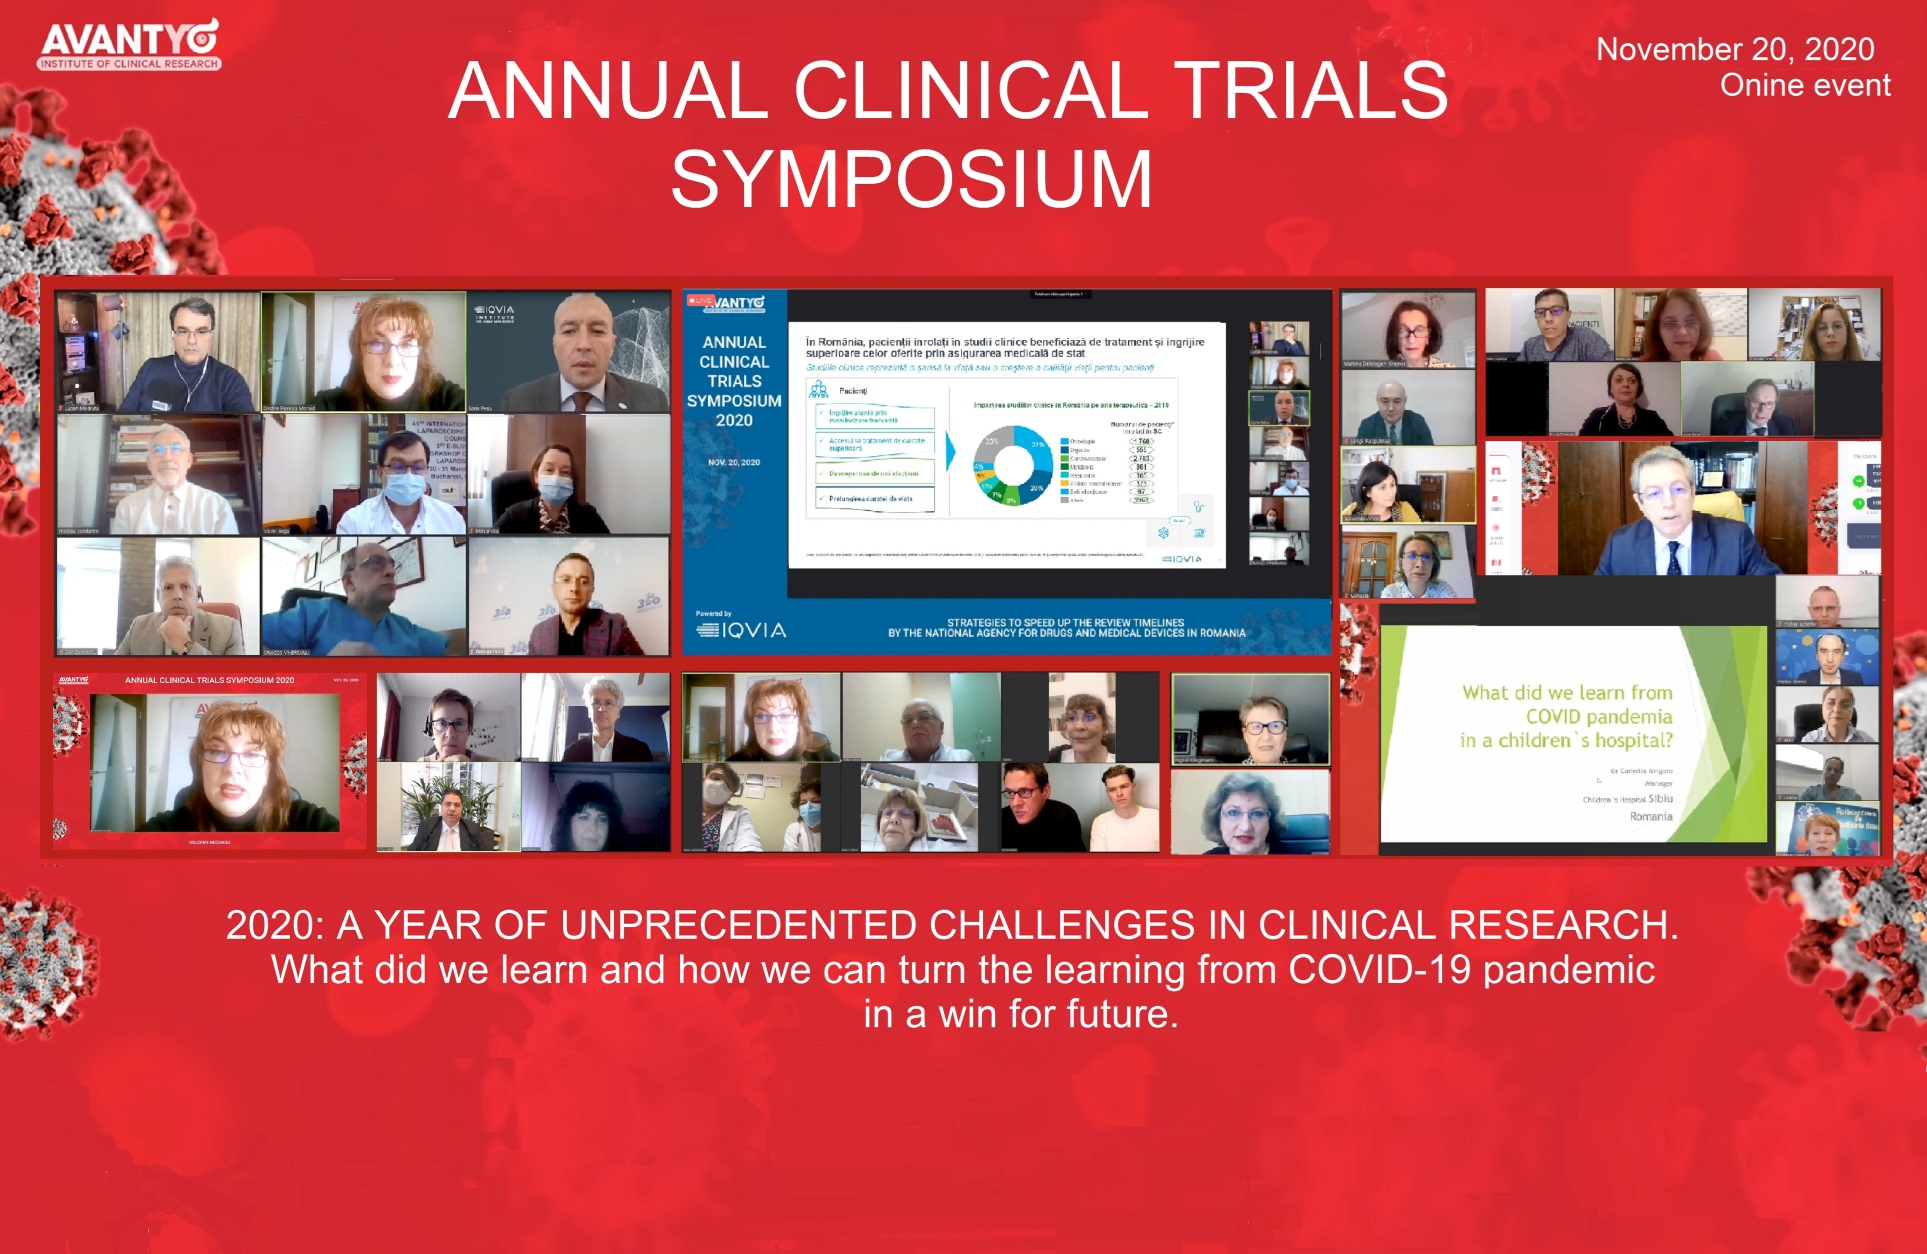 Conclusions and numbers of the Annual Clinical Trials Symposium 2020